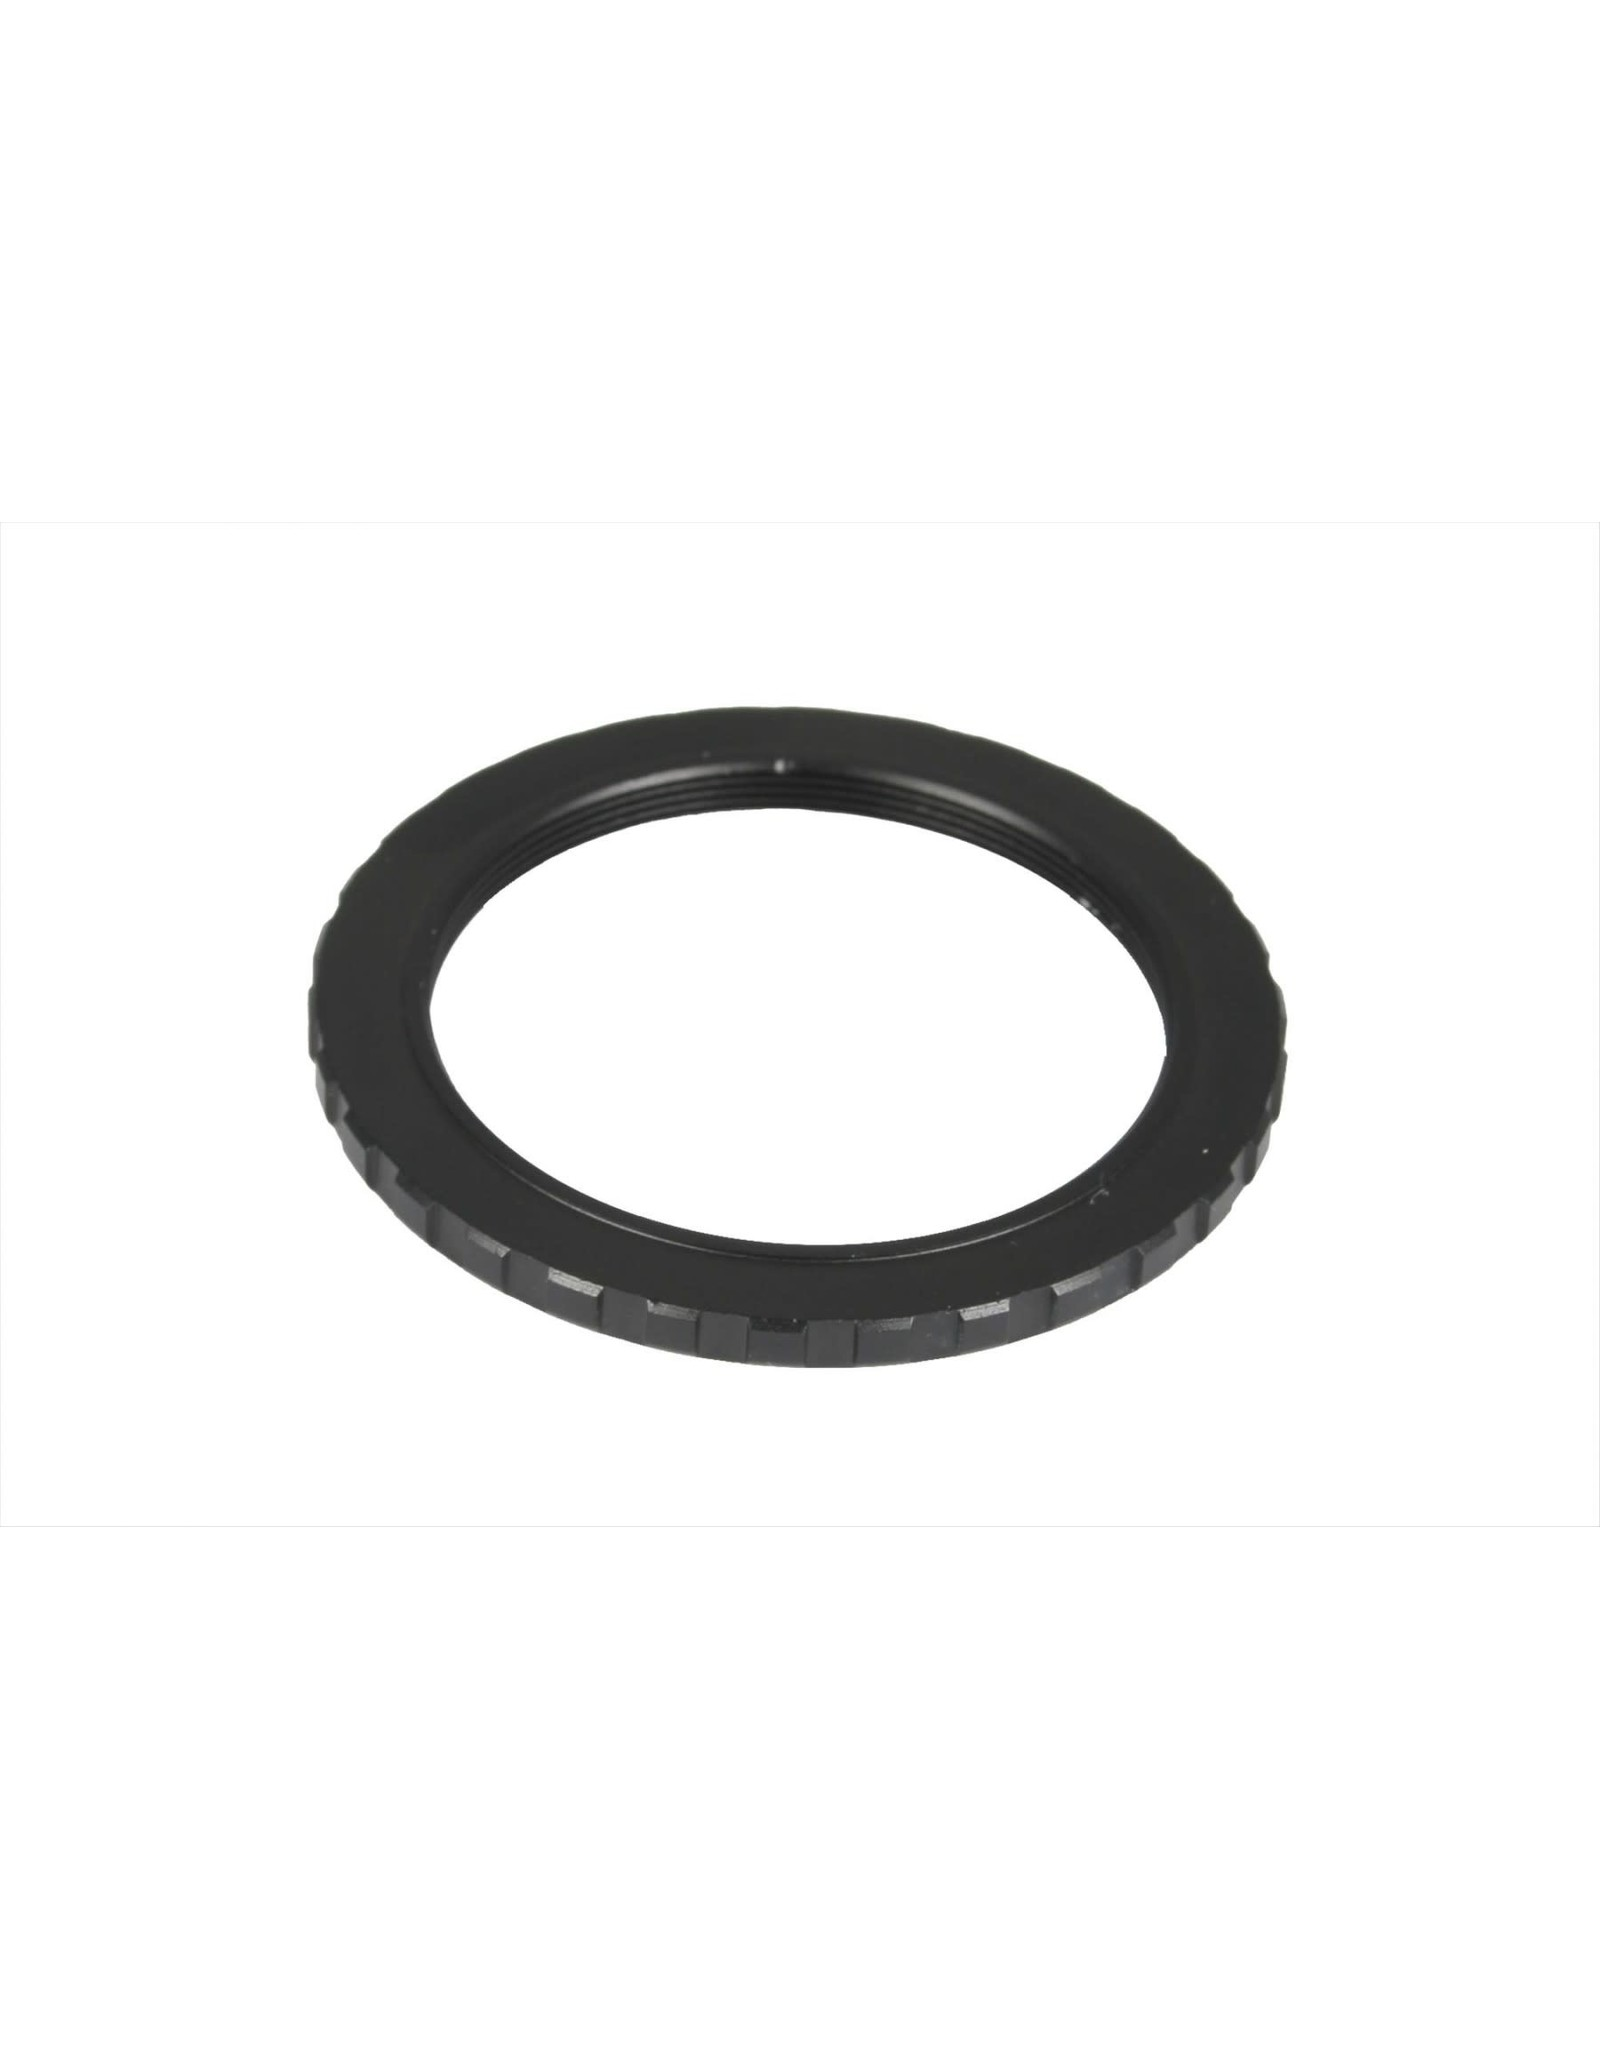 Baader Planetarium Baader T-2 Locking Ring with female T-2 thread